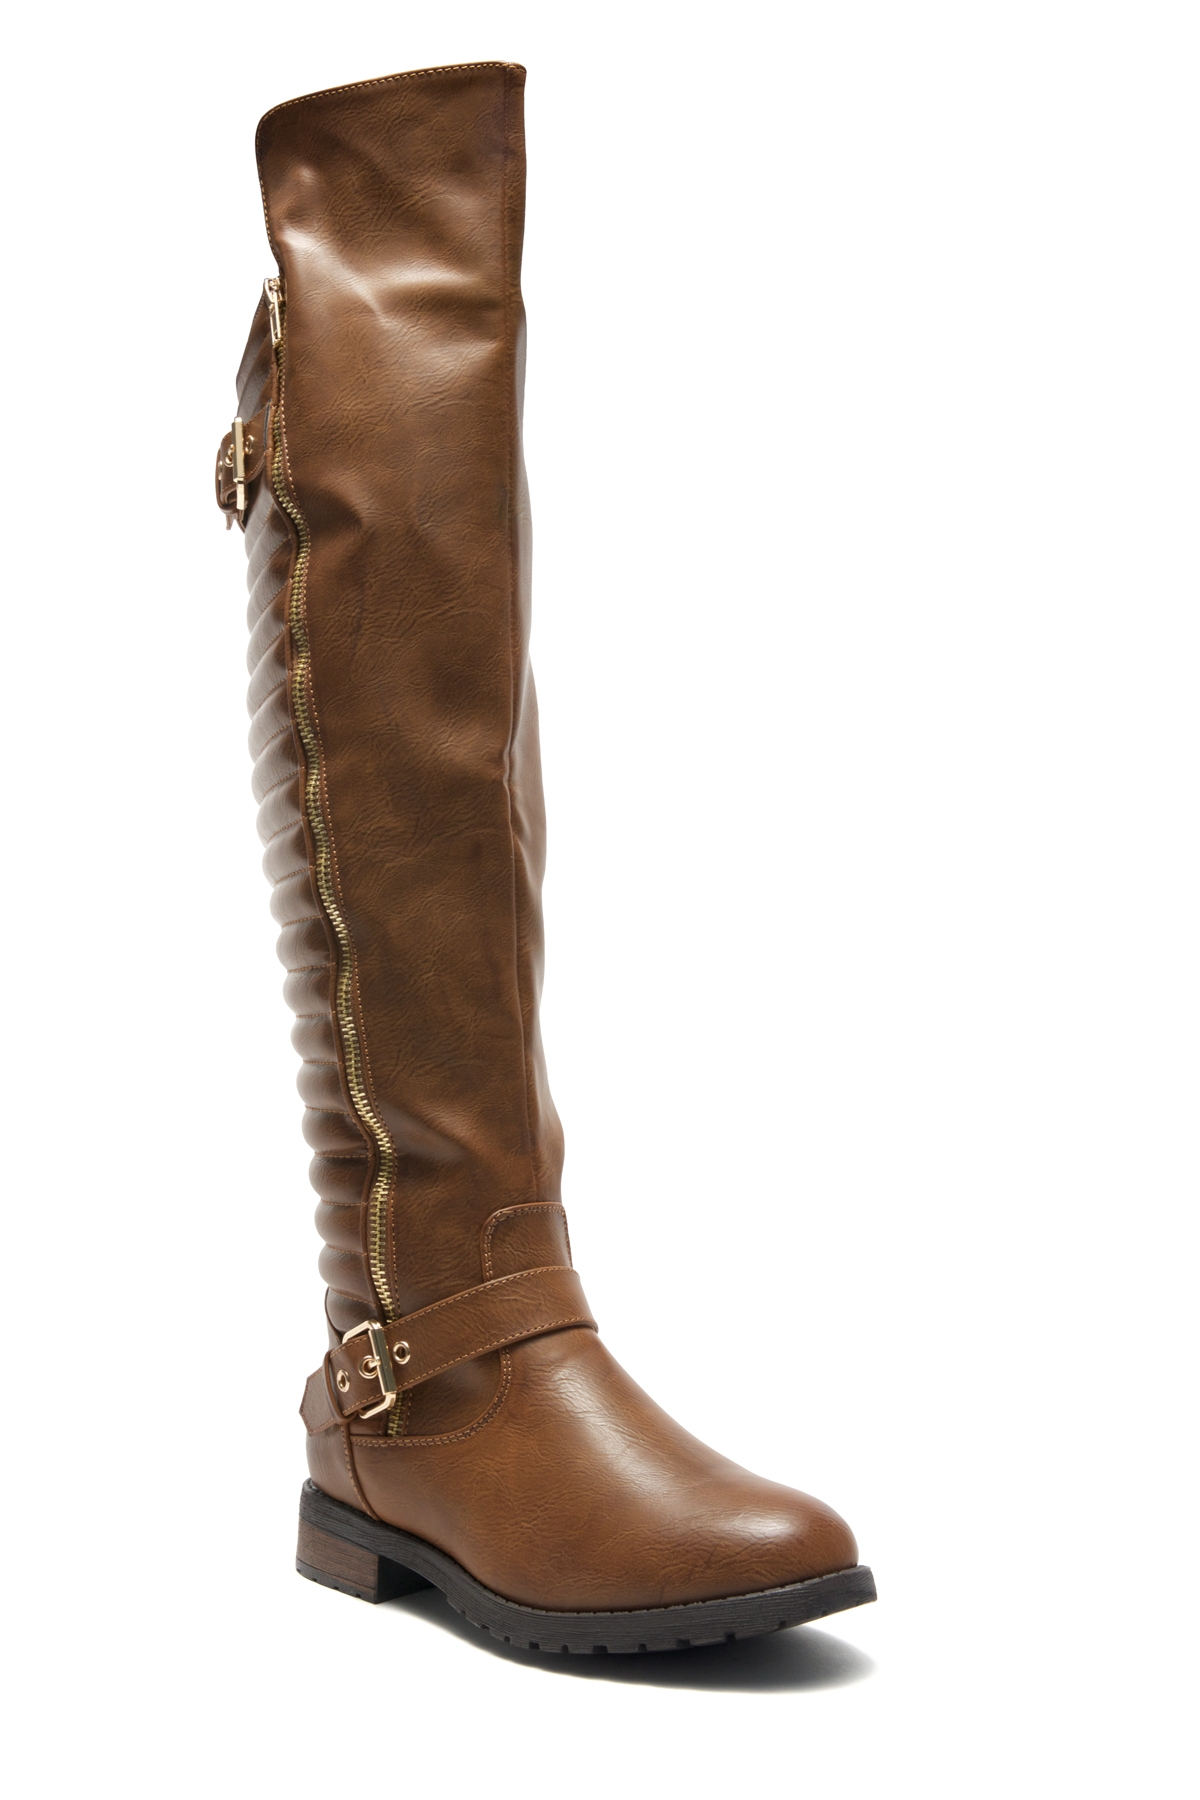 0347e0b61 HerStyle Tense-Double Buckle with zipper detail Over-The-Knee Riding Boots  (Tan)